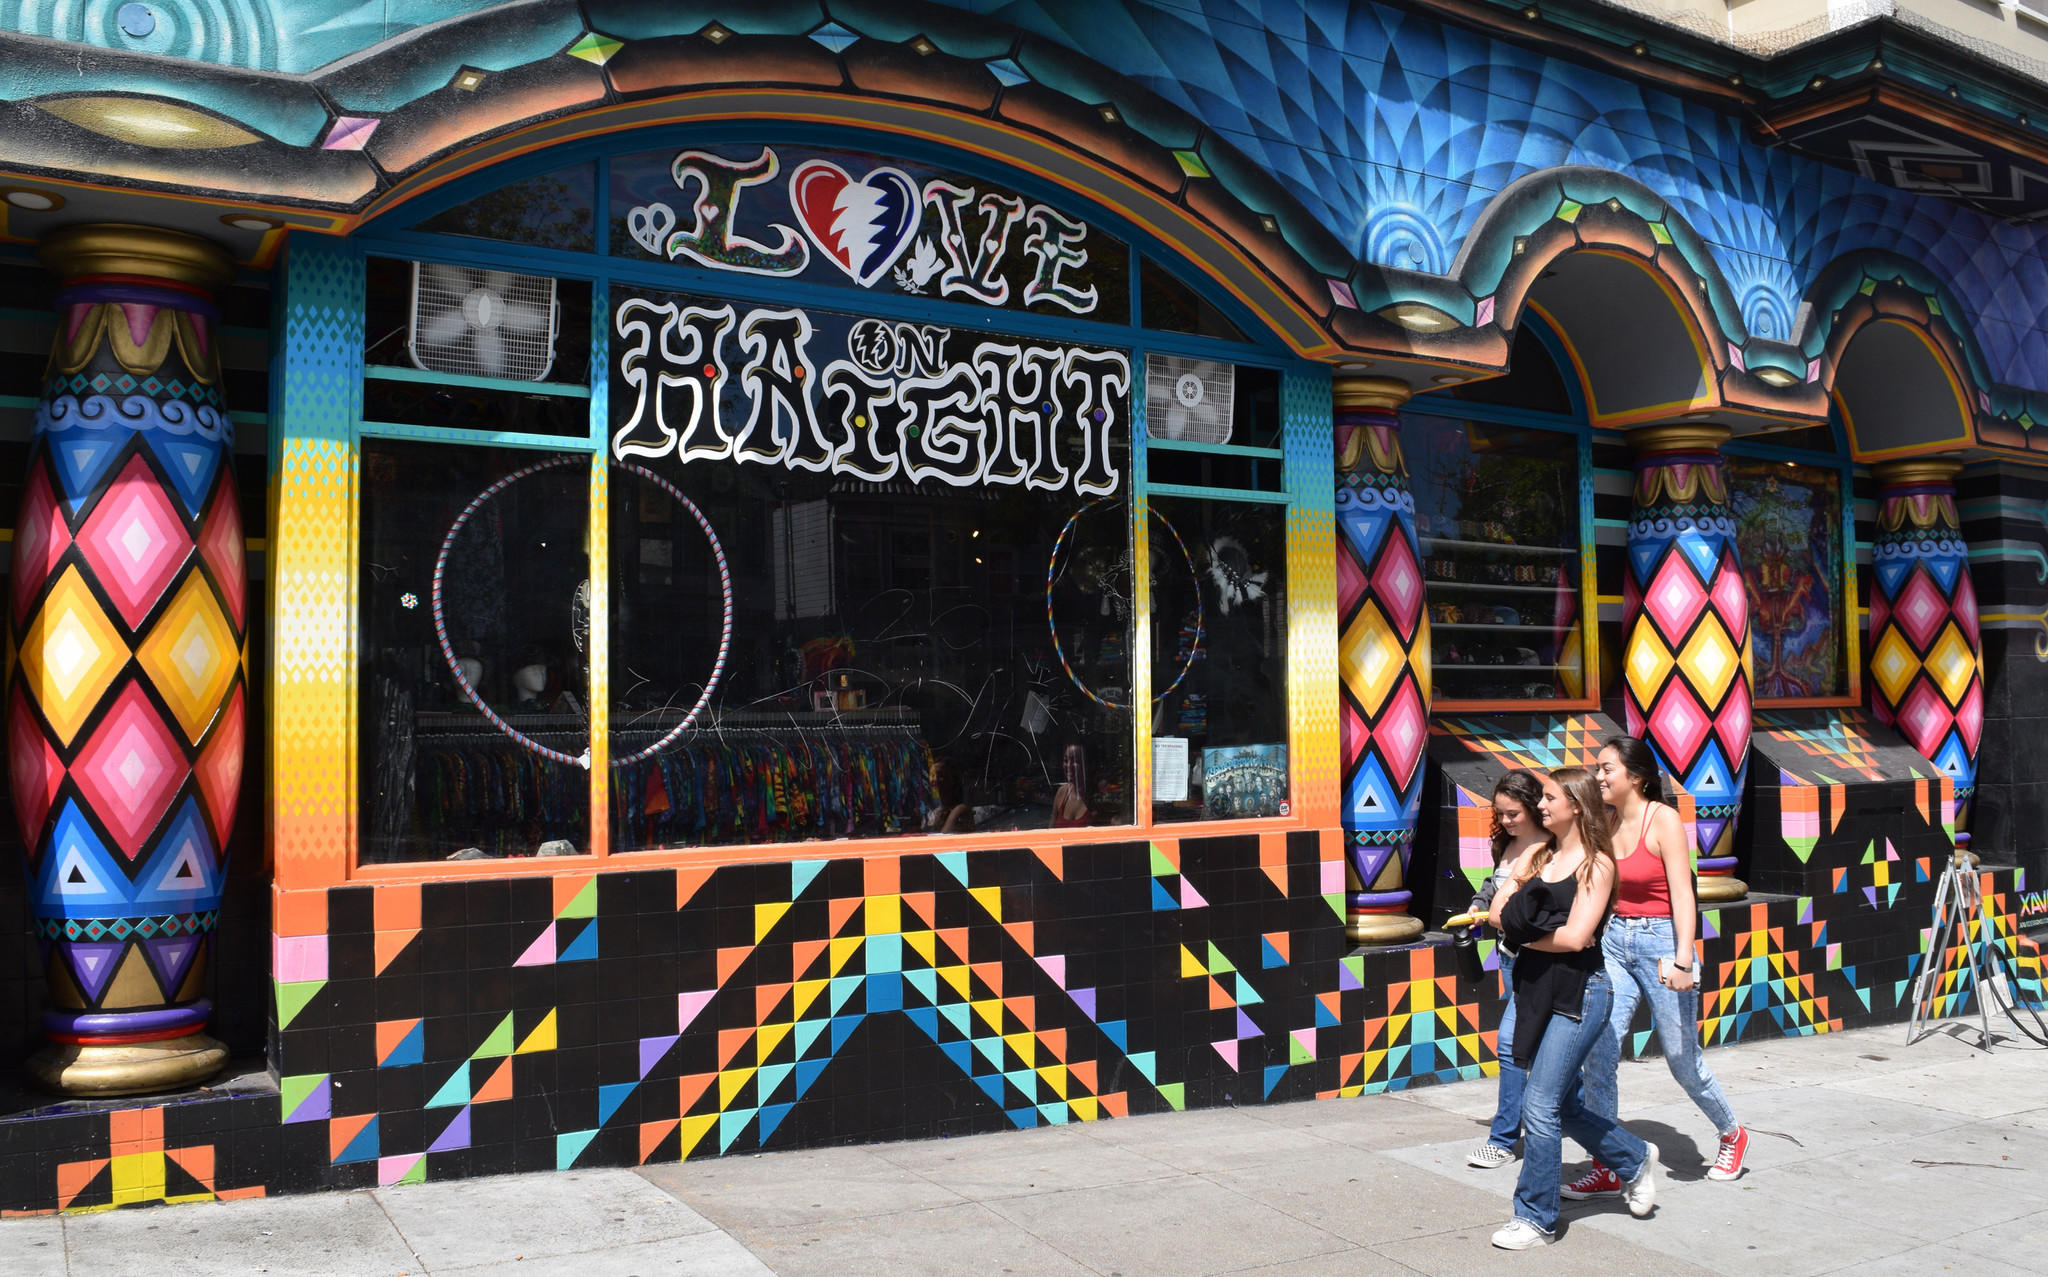 Colors leap out in a Free Love Tour of San Francisco's Haight-Ashbury neighborhood by Wes Leslie of Wild SF Walking Tours.